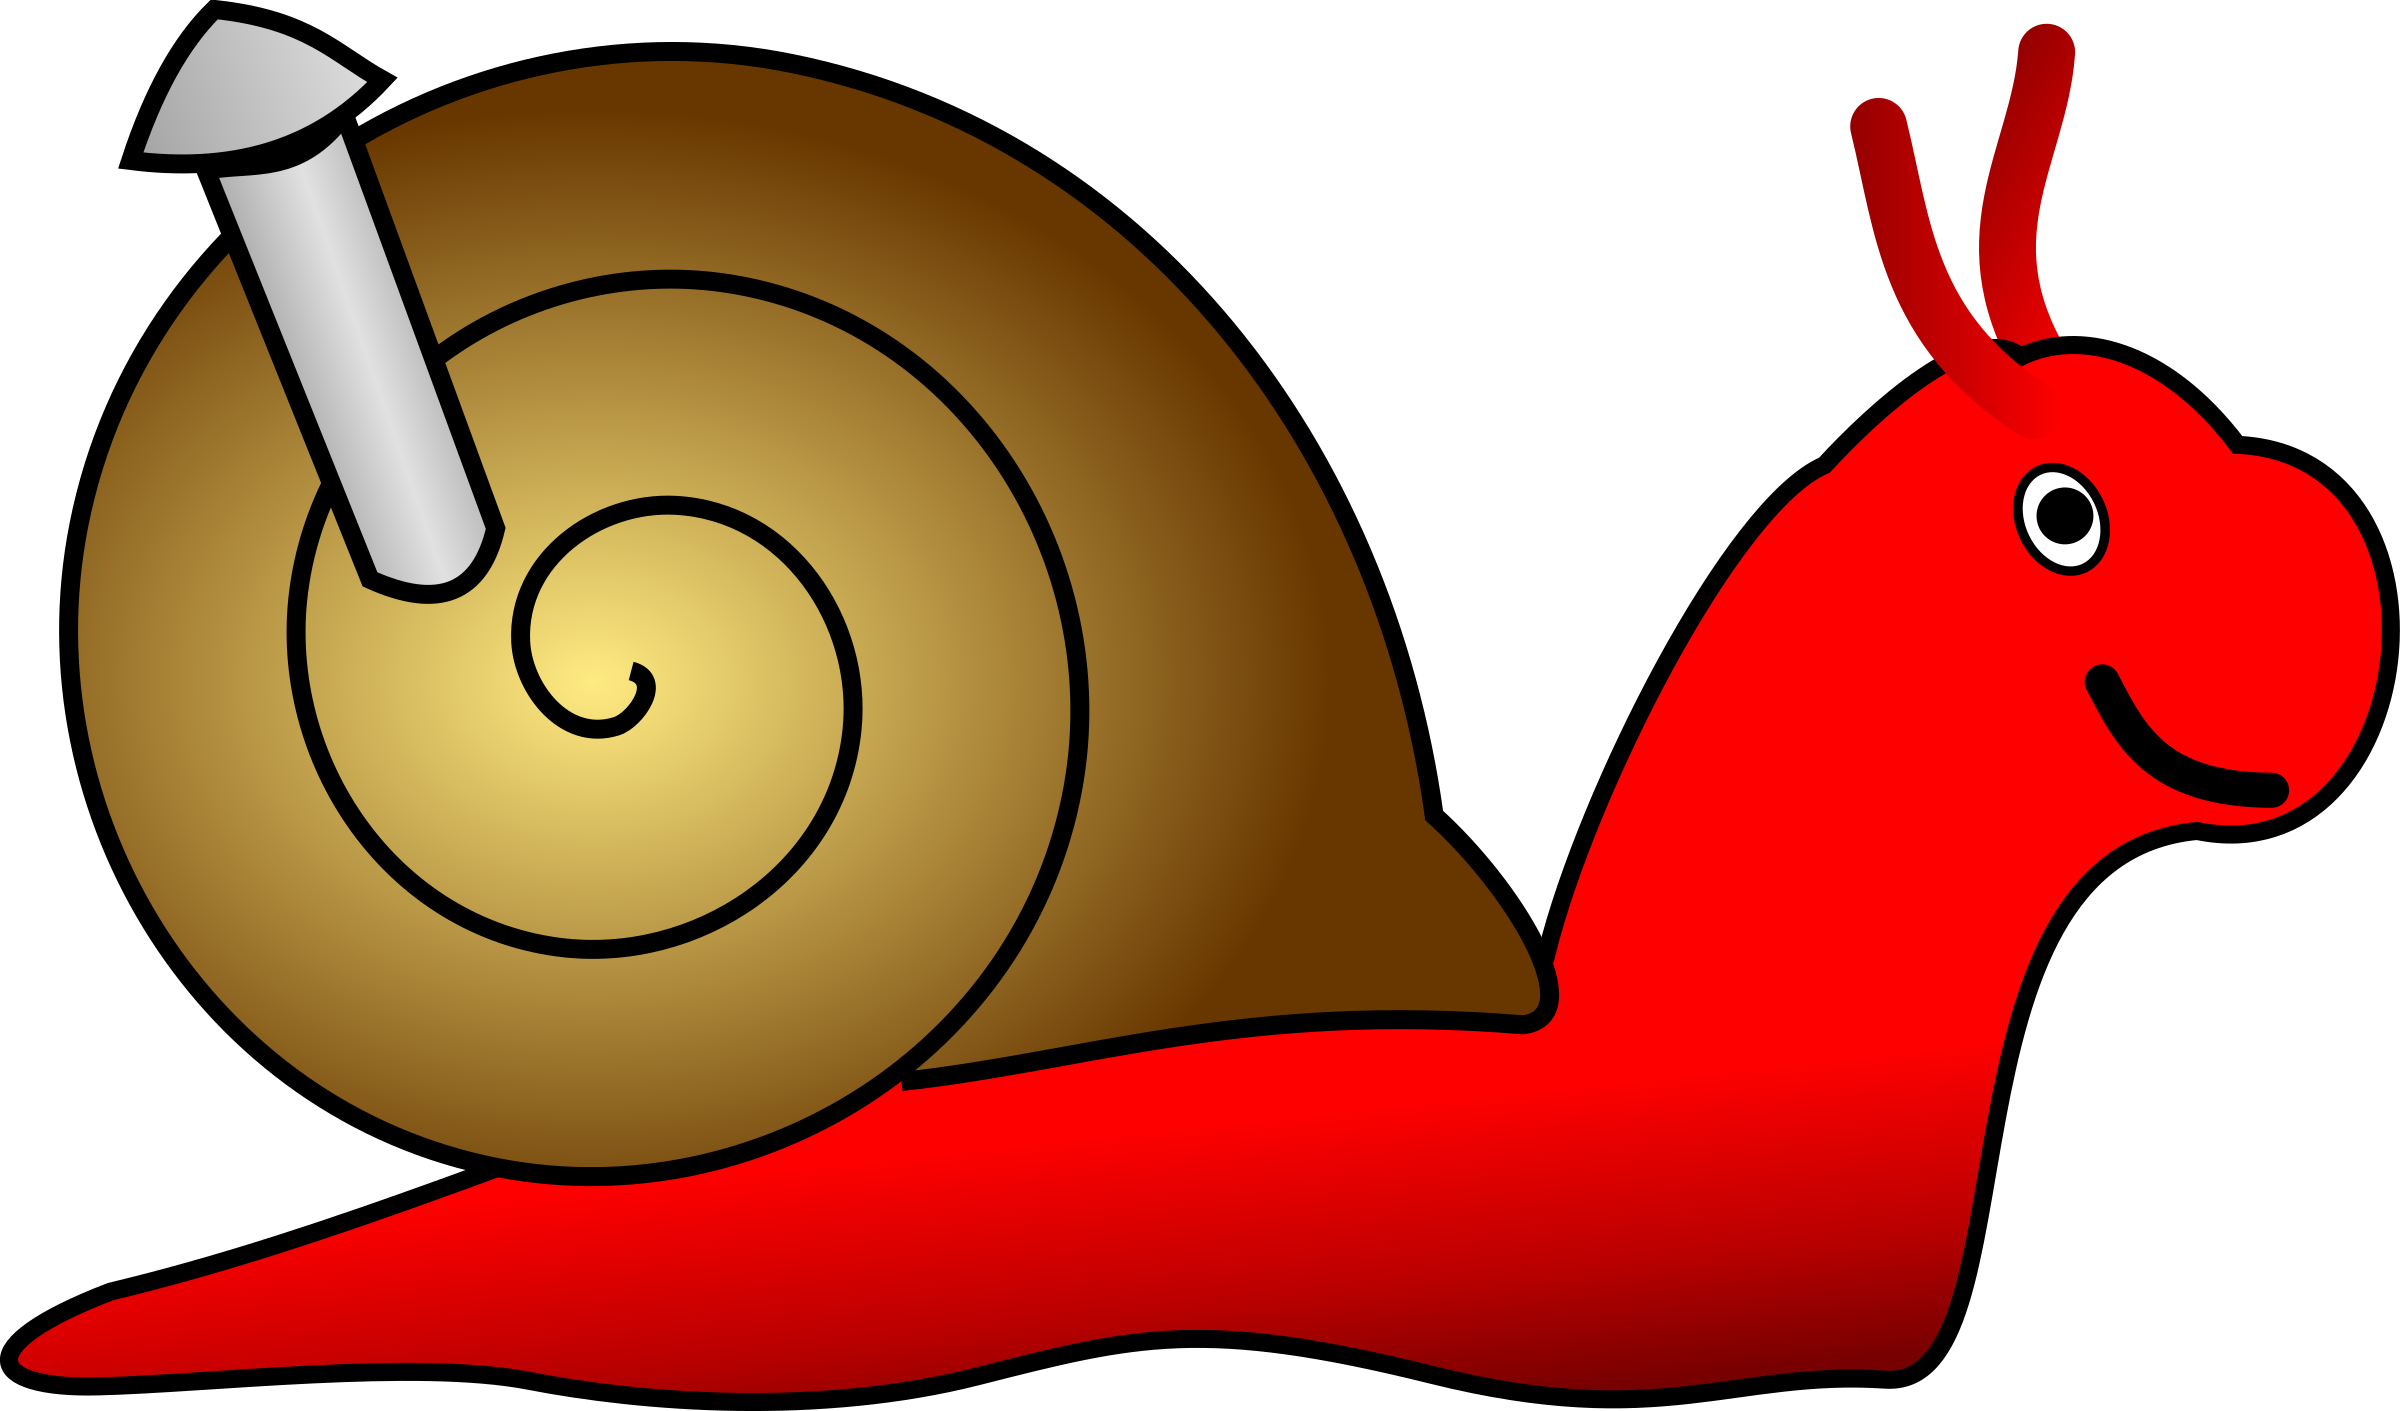 Red clipart snail #8